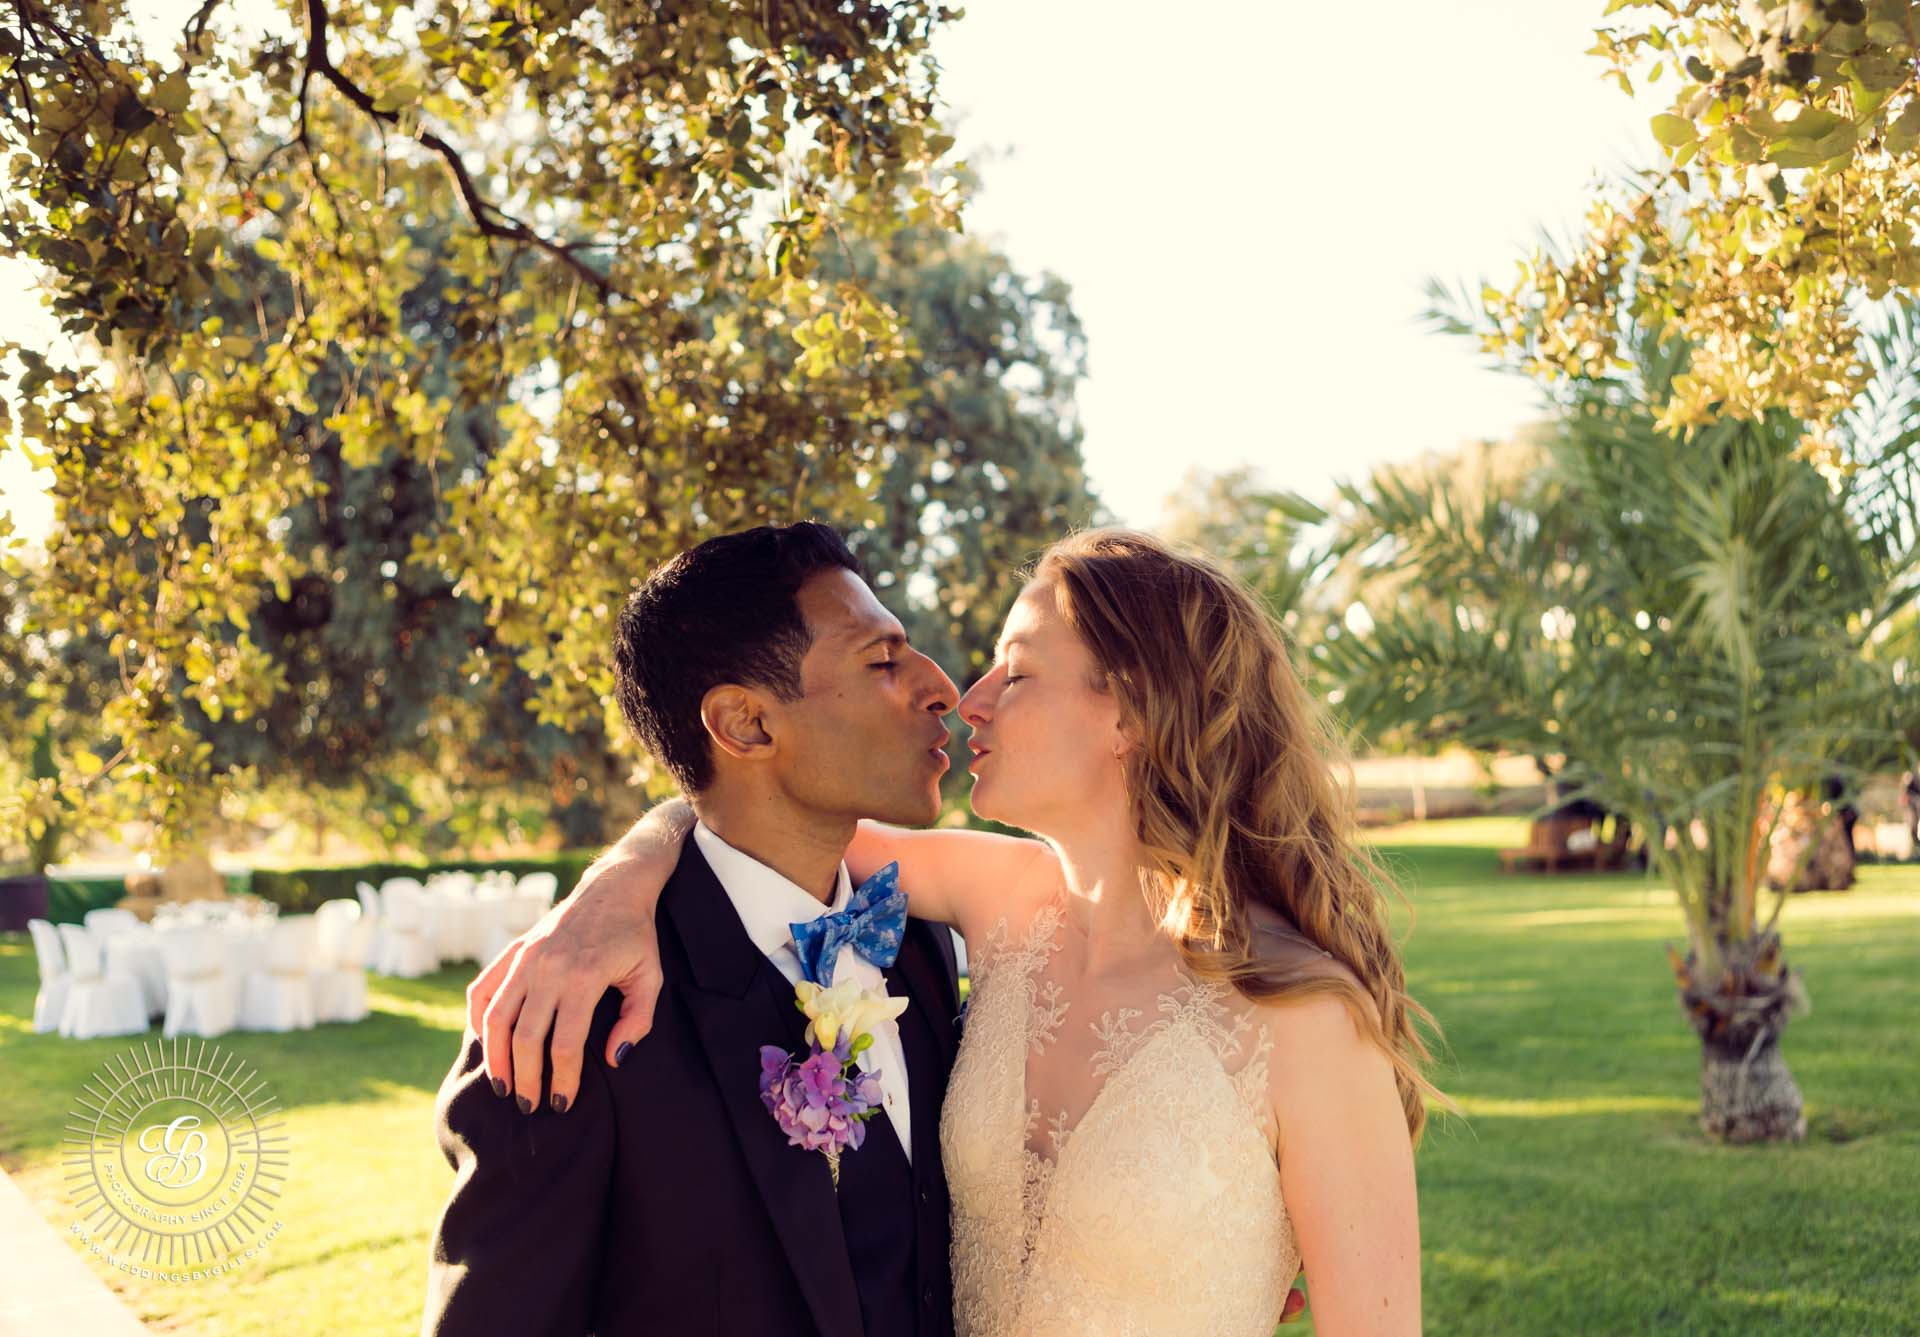 lovers kiss at garden wedding in spain